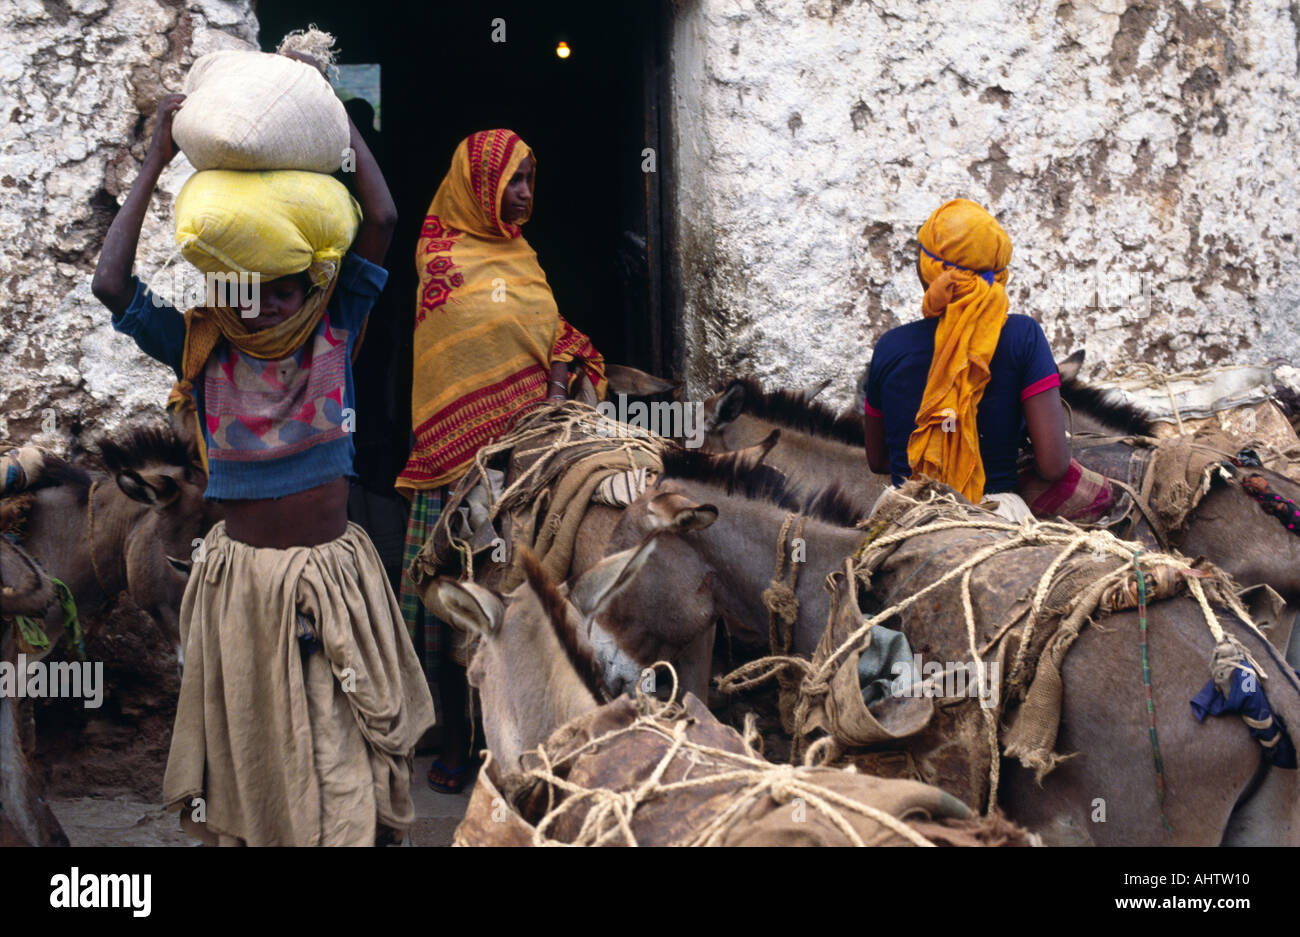 Women from Oromo tribe buying supplies in Eastern Ethiopia - Stock Image